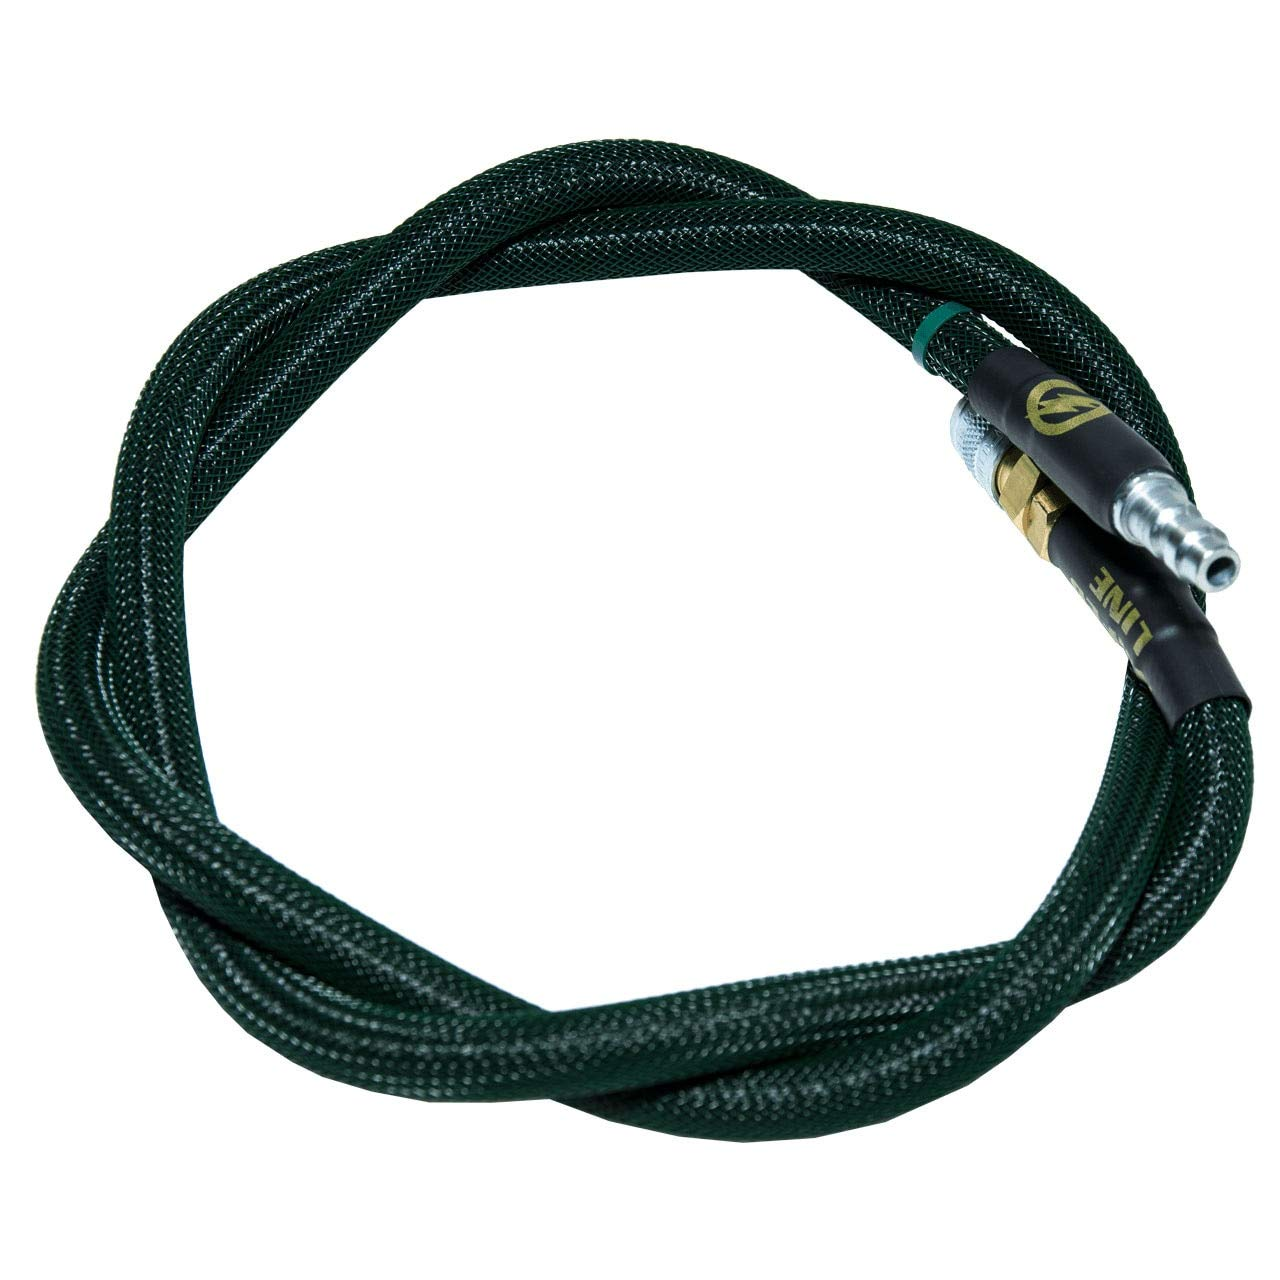 AMPED Airsoft Amped Line   Standard Weave for PolarStar, Wolverine, and Redline HPA Units 36 Inch (Recommended) Forest Green by AMPED Airsoft